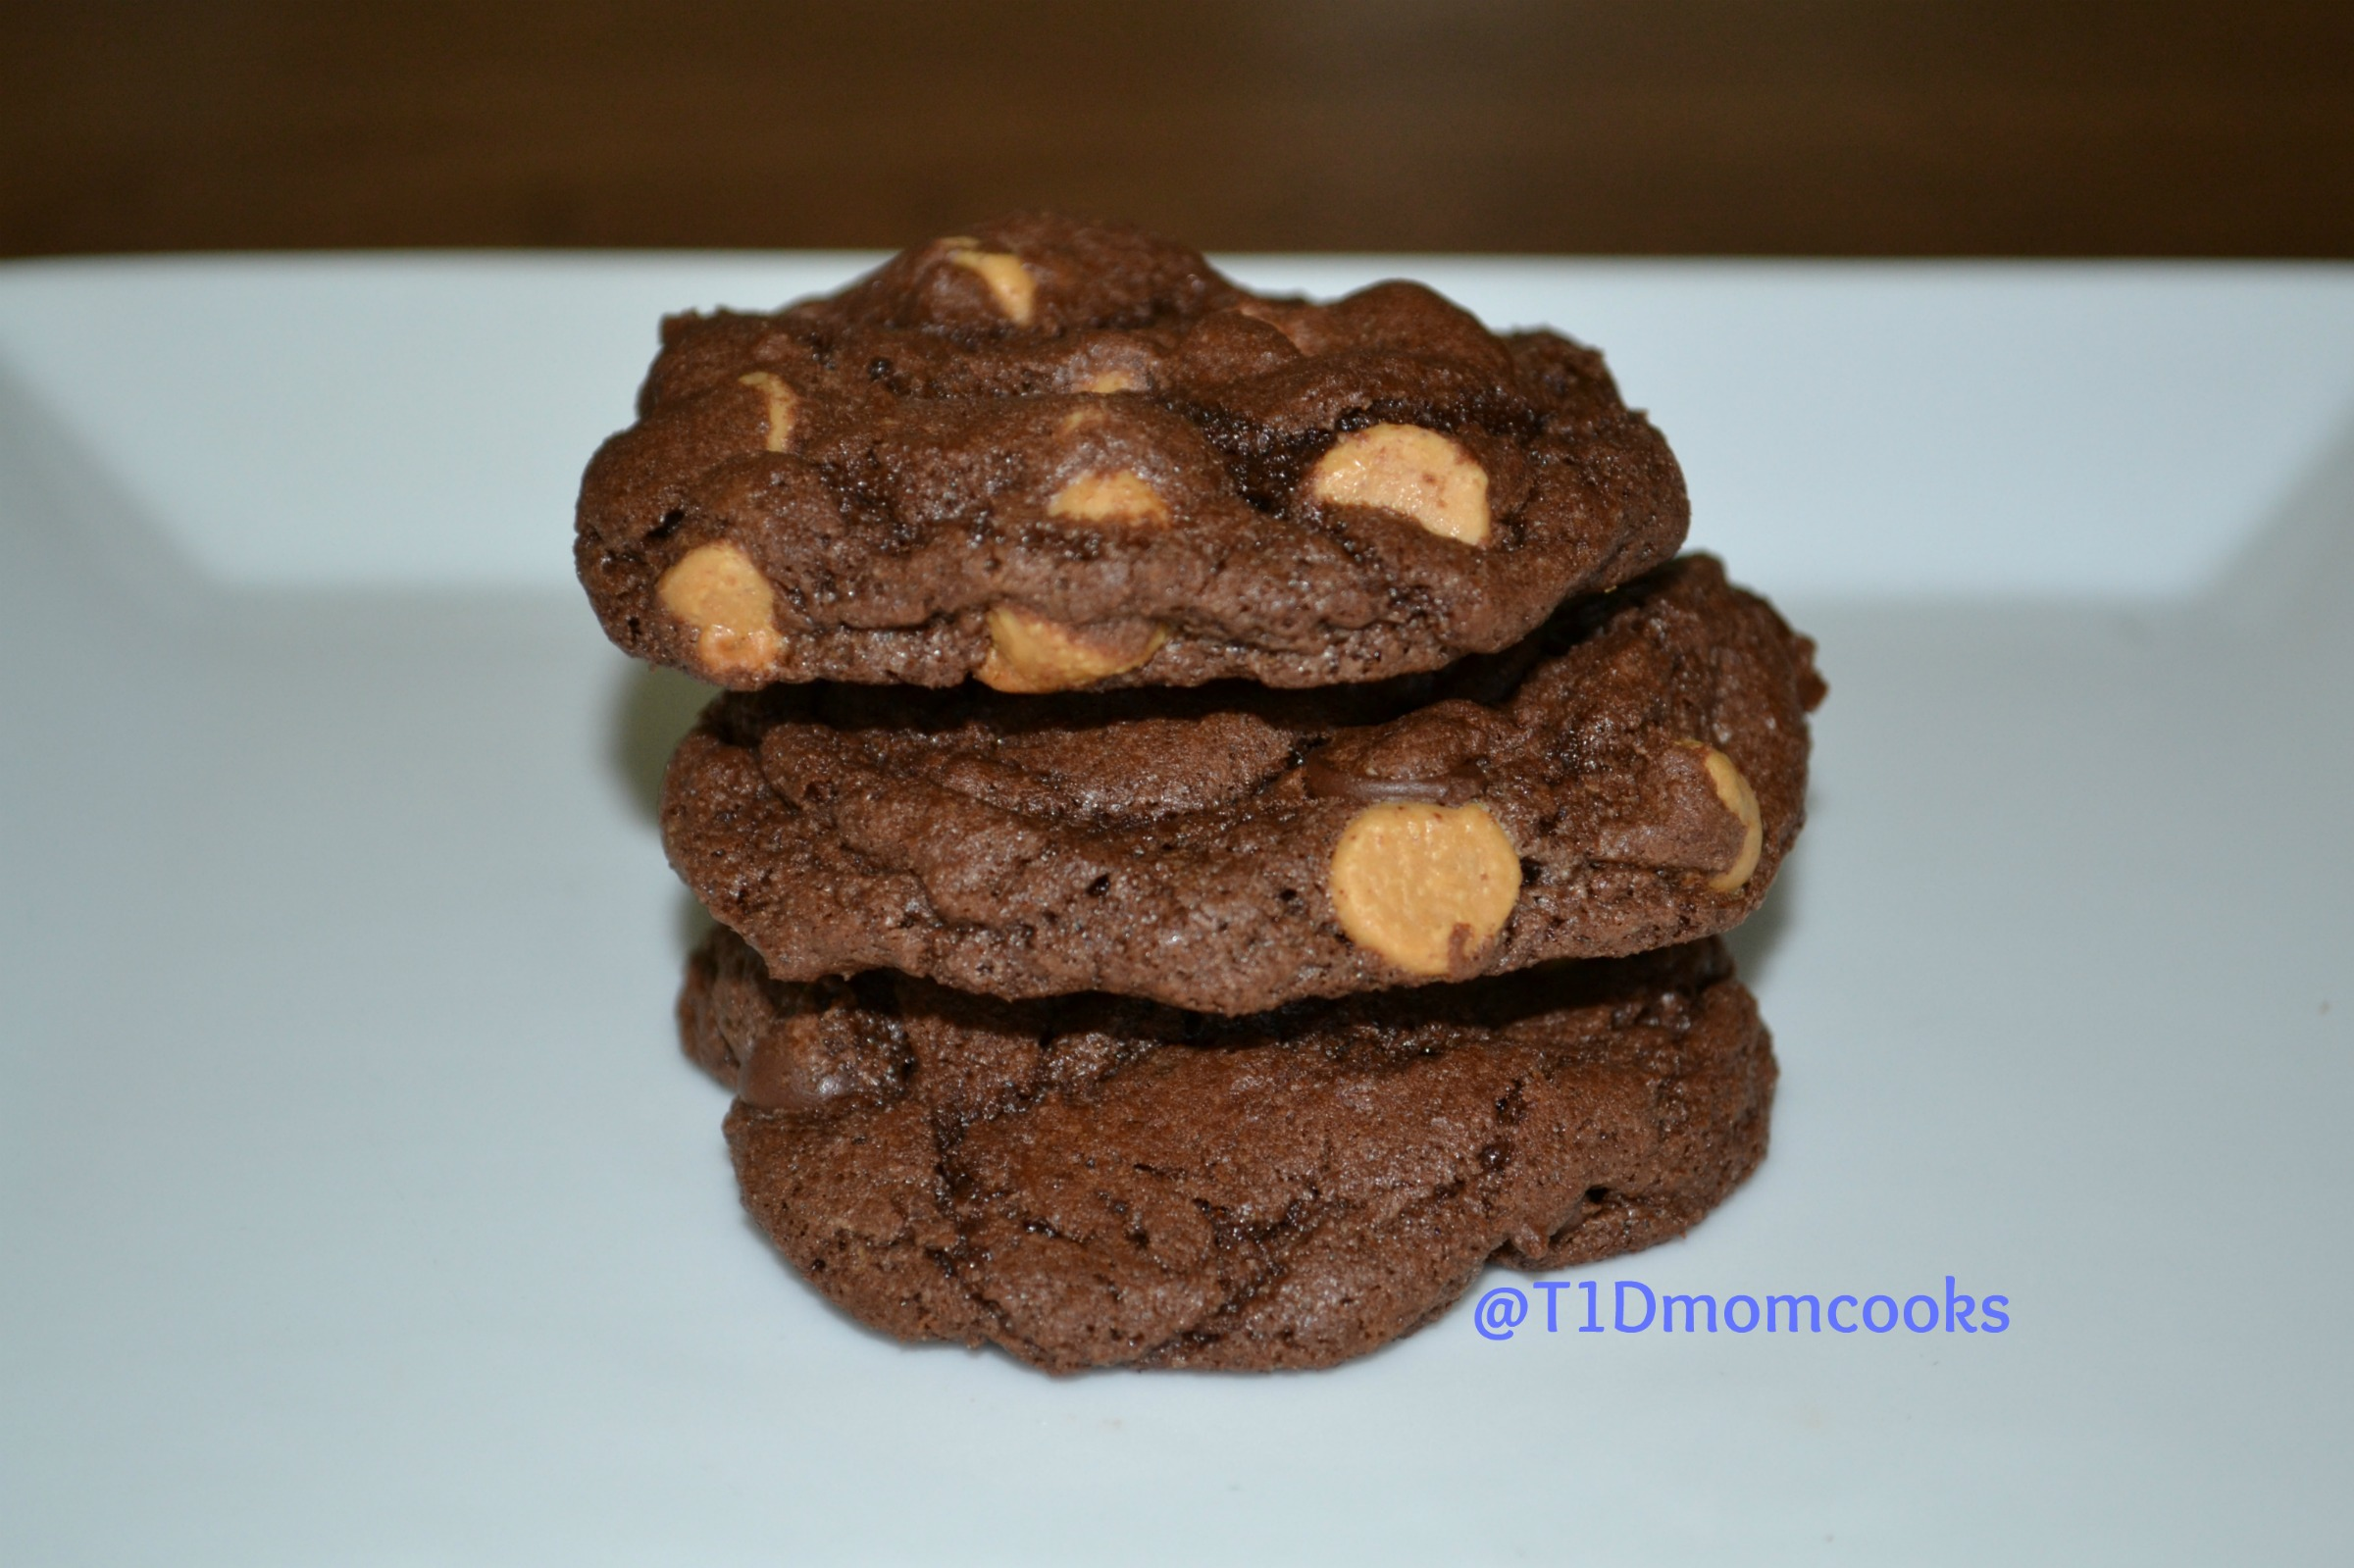 Double chocolate peaut butter cookies by Barb Szyszkiewicz for cookandcount.wordpress.com